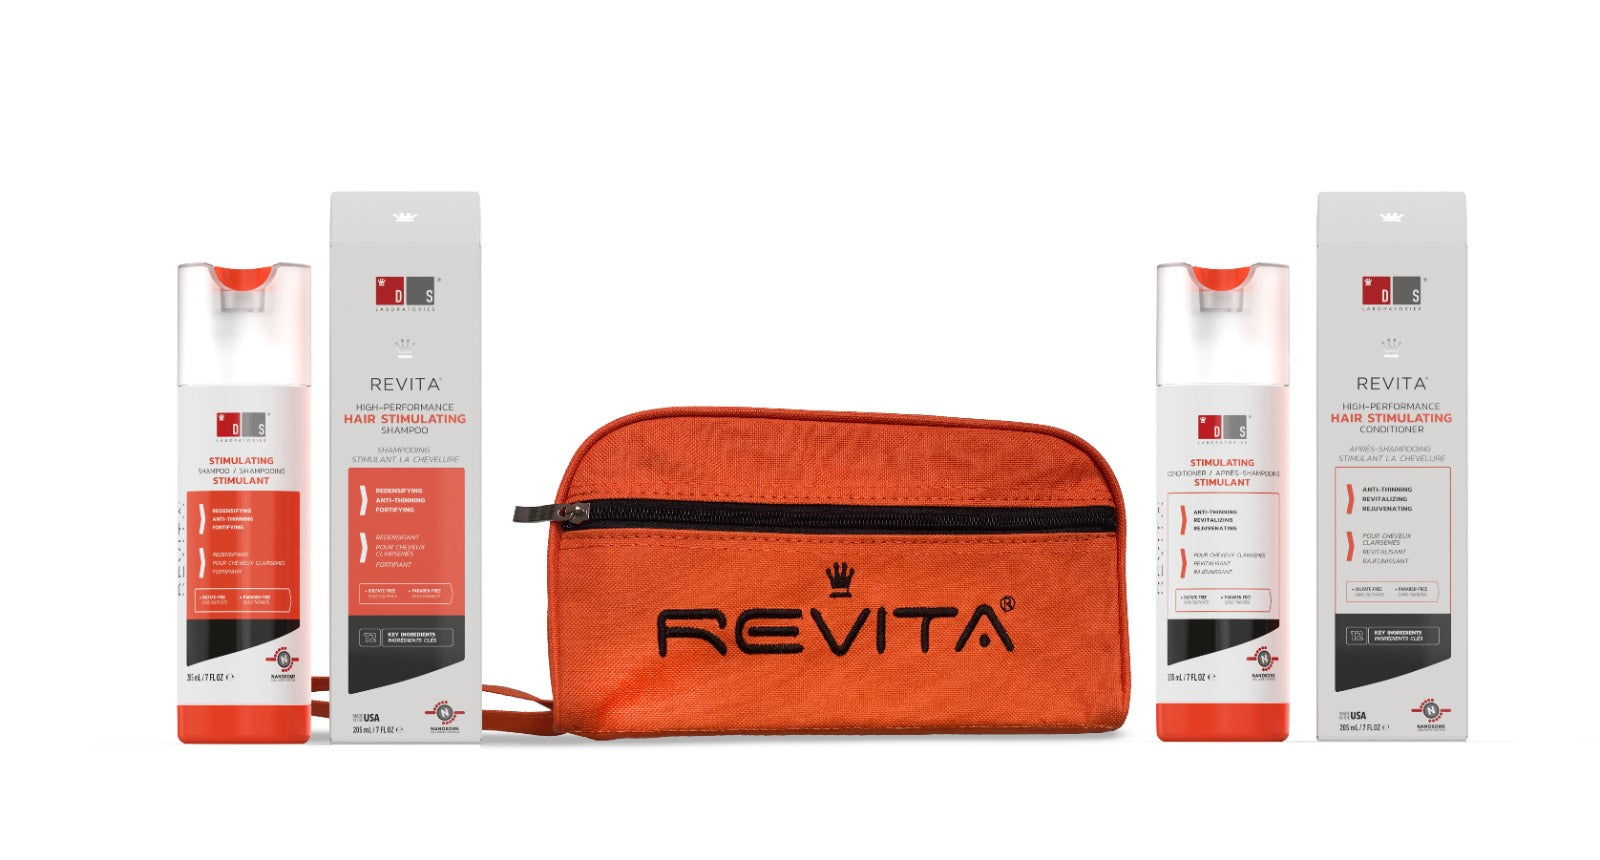 Revita Kit w/ Free Toiletry Bag| Hair Growth Stimulating Shampoo & Conditioner w/ Free Toiletry Bag